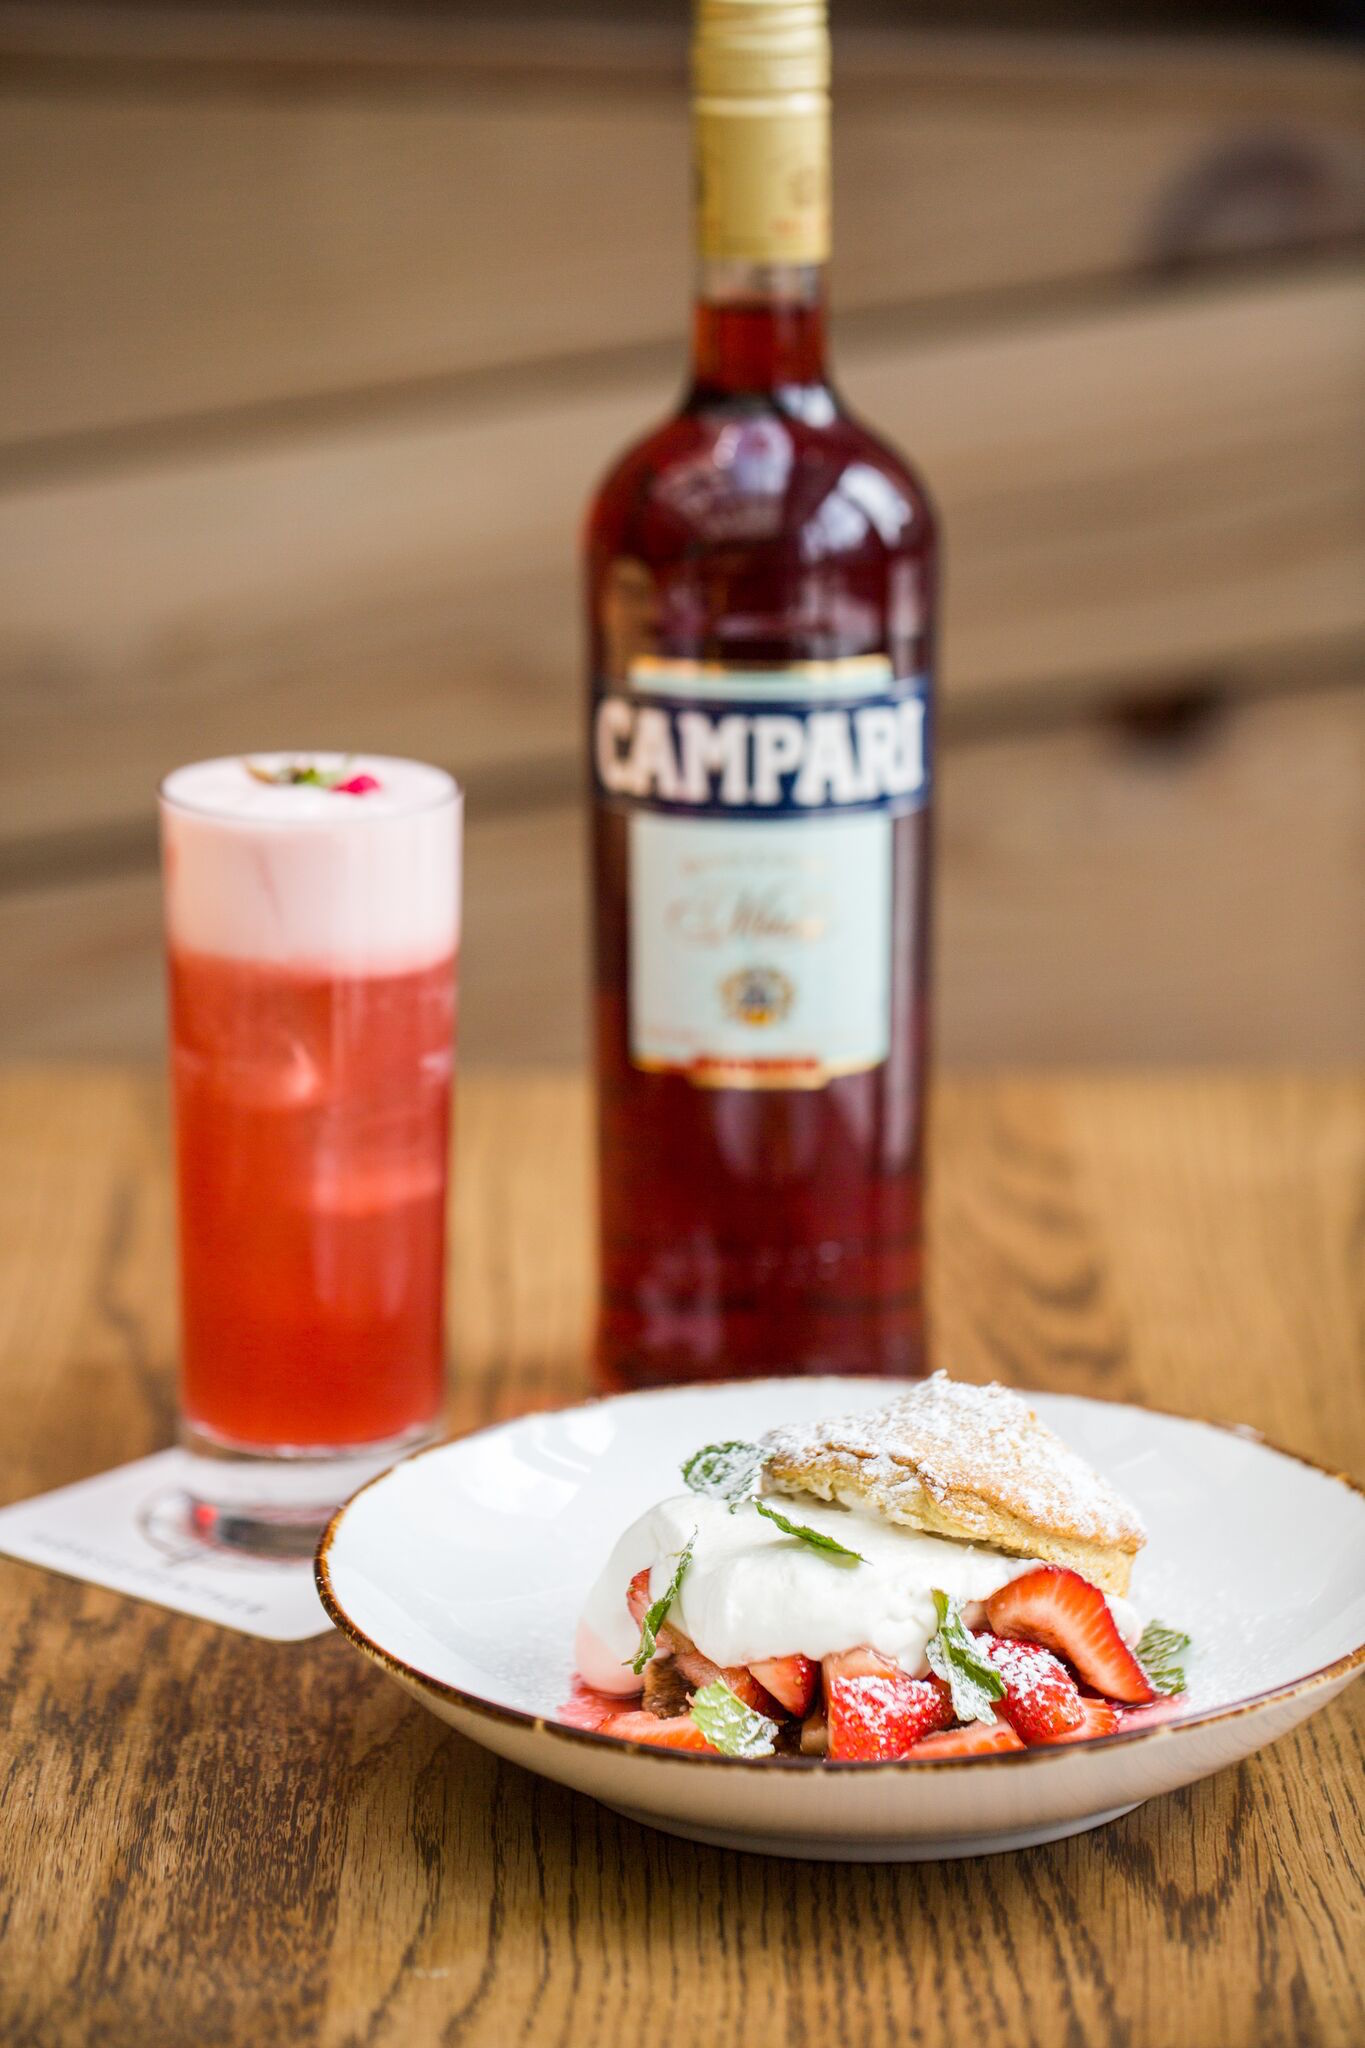 Chef Chinchilla's strawberry shortcake with Campari syrup alongside the Campari libation